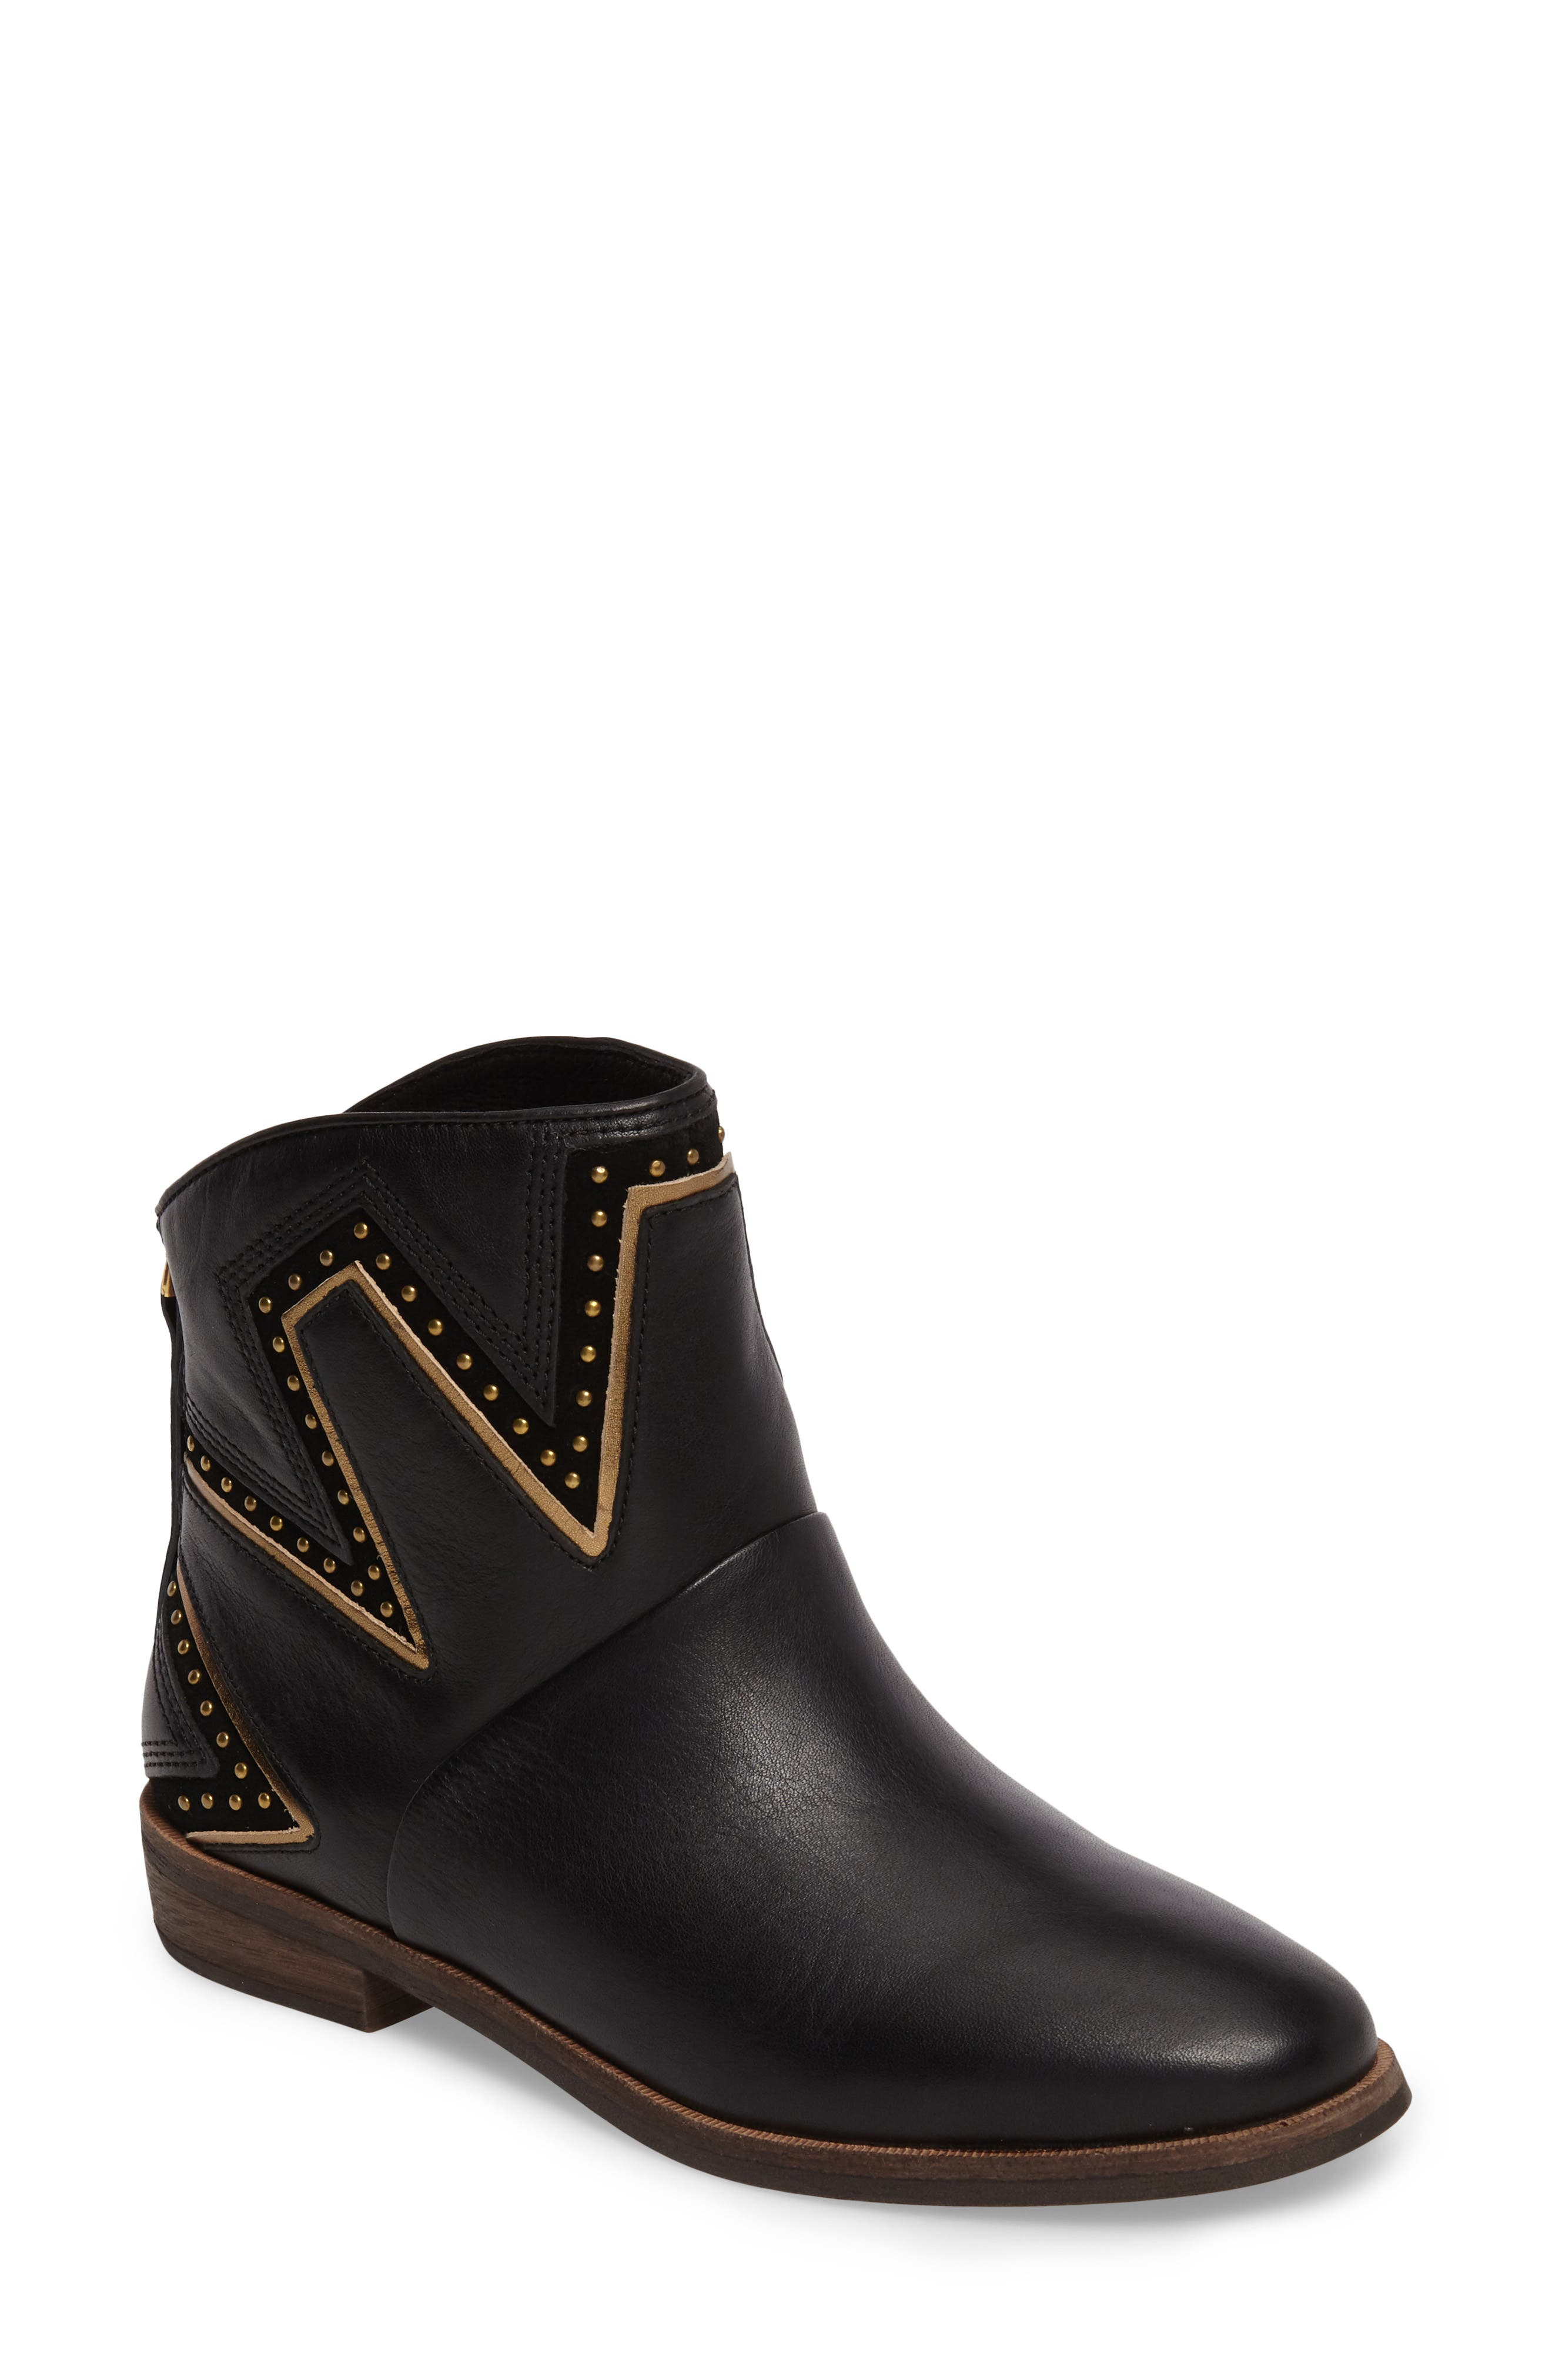 Lars Studded Bootie,                         Main,                         color, Black Leather